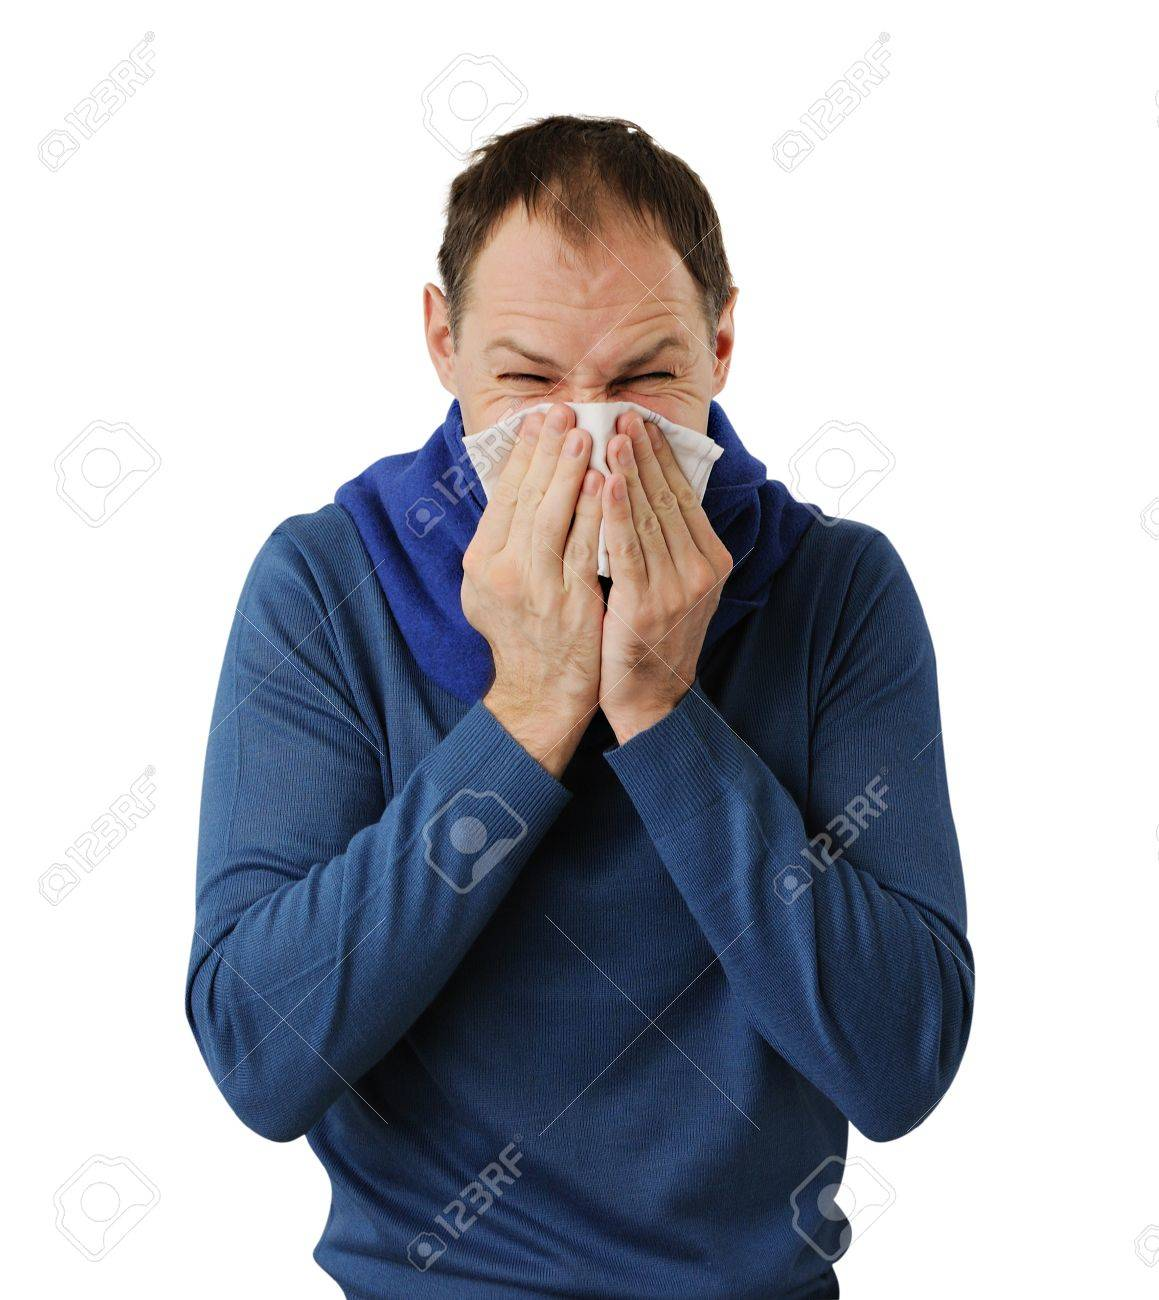 Man blowing his nose isolated on white background - 17456955